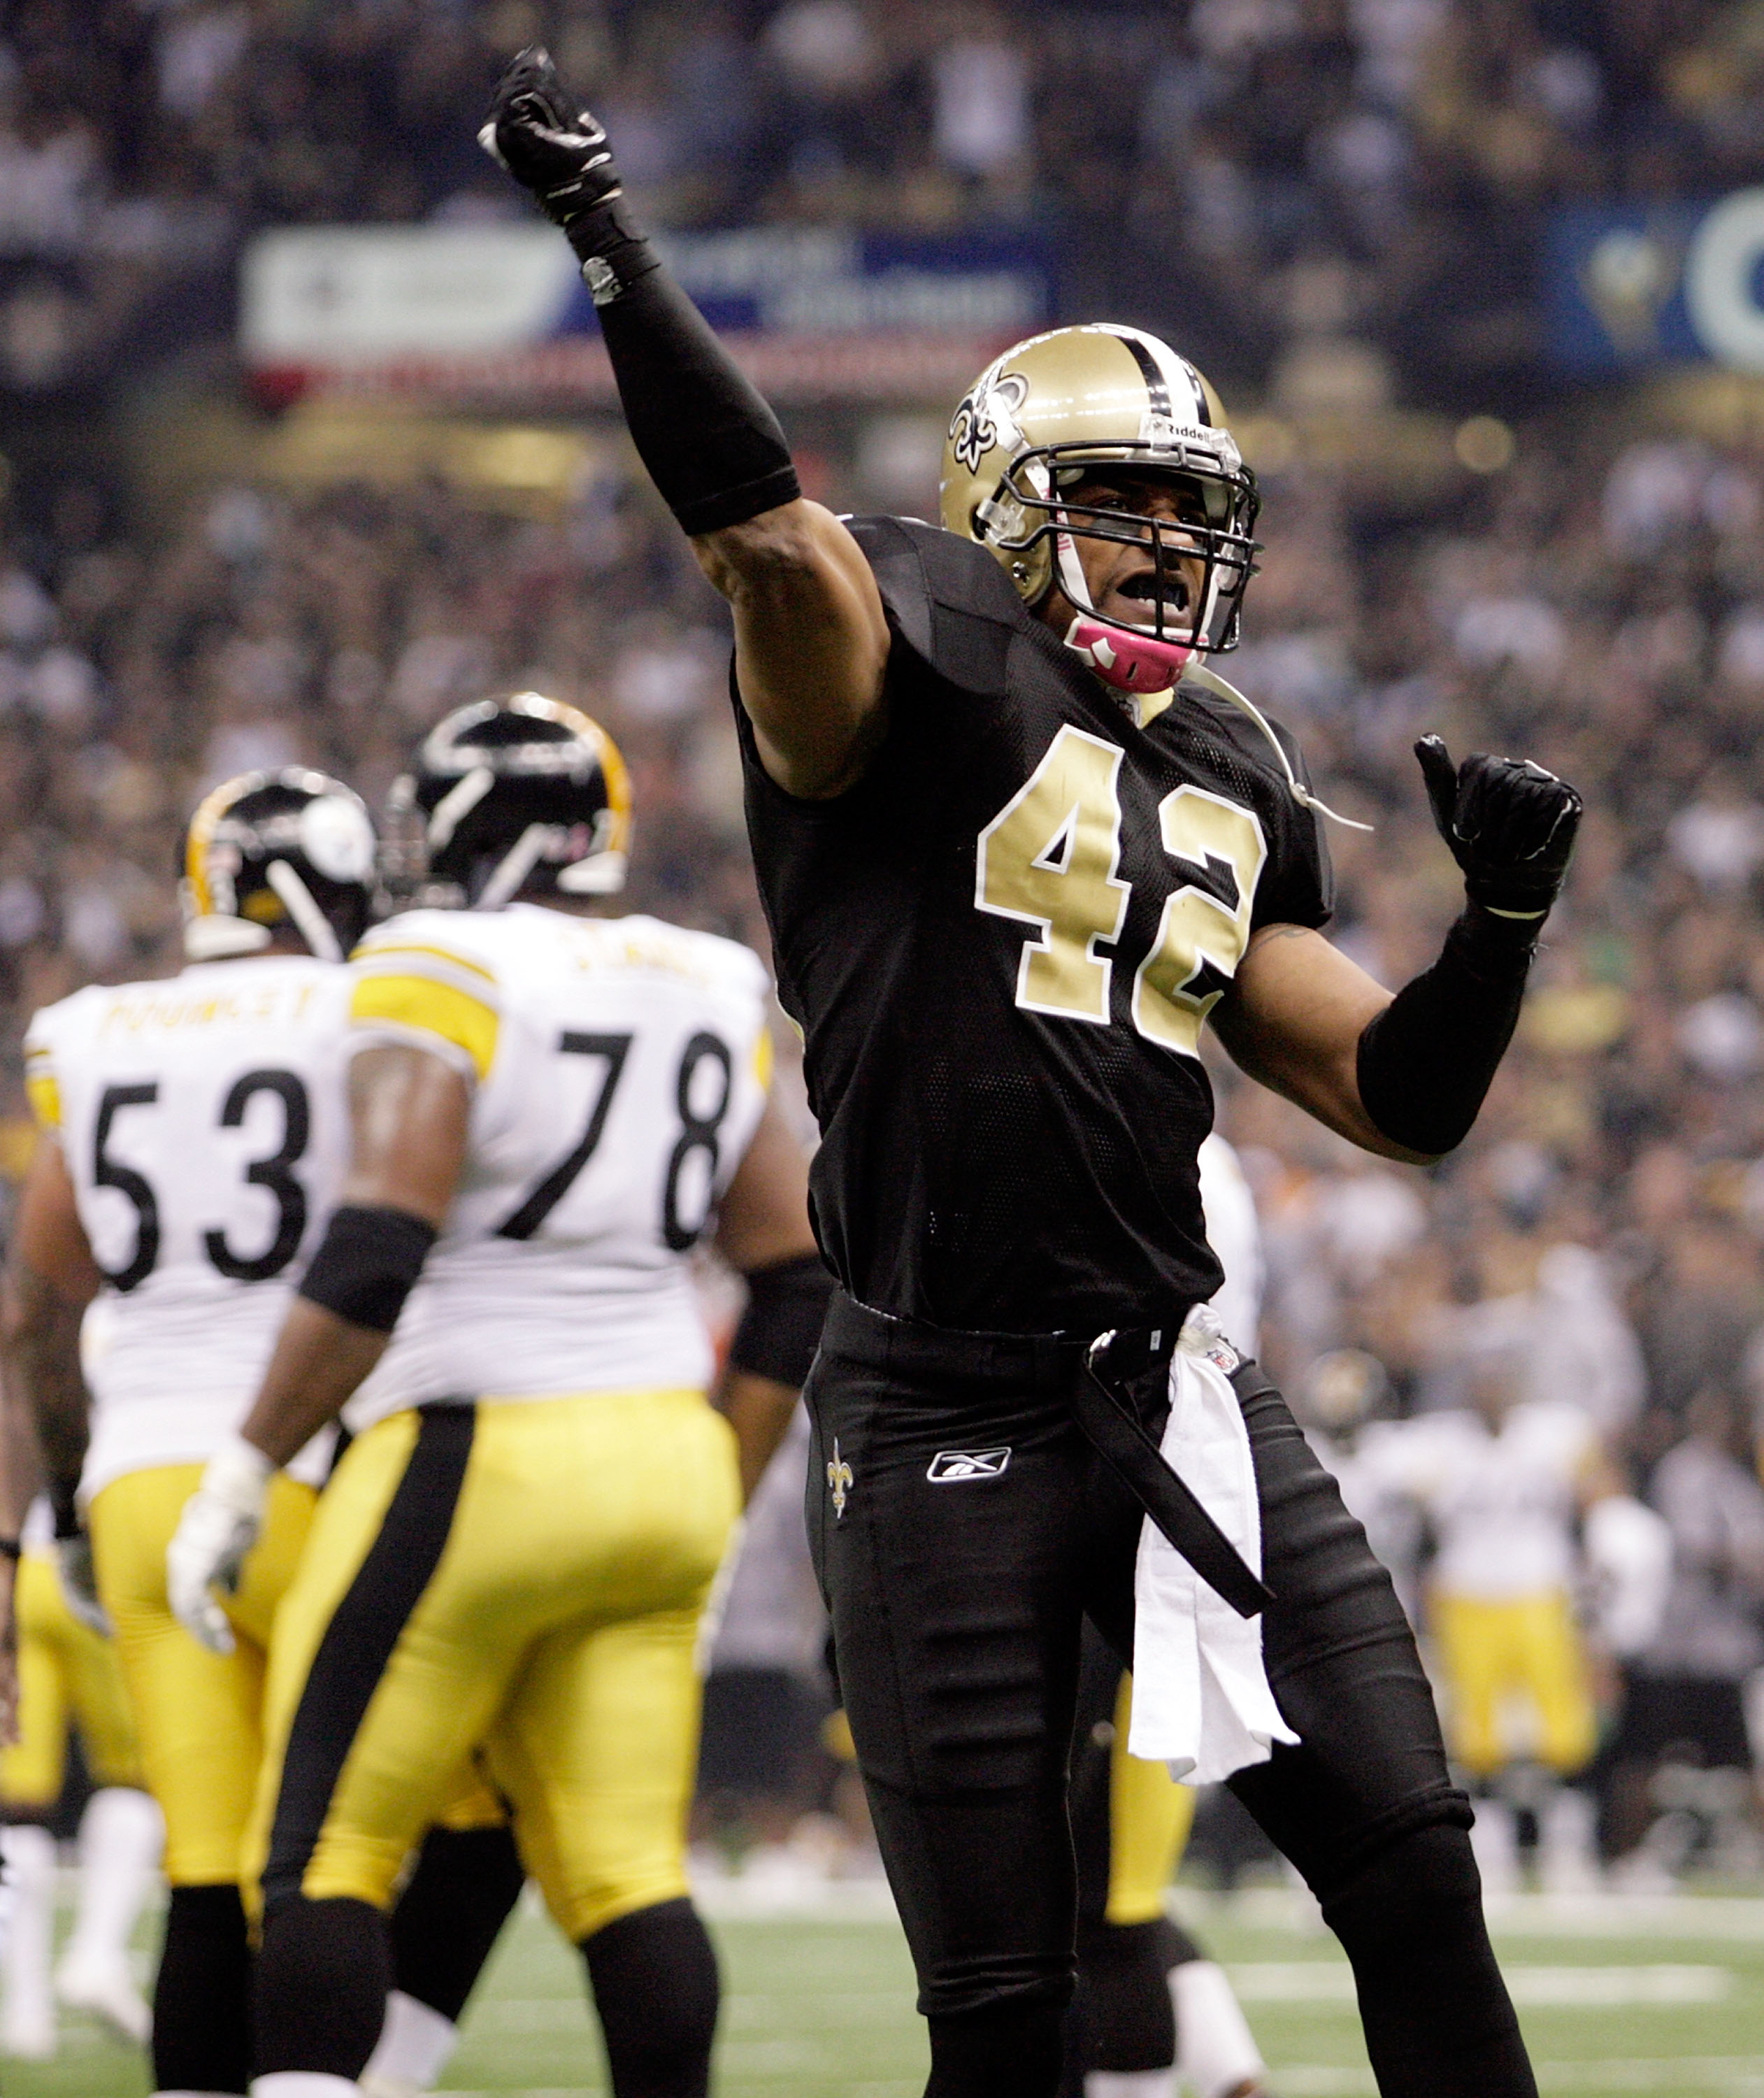 NEW ORLEANS, LA - OCTOBER 31: Darren Sharper #42 of the New Orleans Saints celebrates a play during the game against the Pittsburgh Steelers at the Louisiana Superdome on October 31, 2010 in New Orleans, Louisiana. (Photo by Matthew Sharpe/Getty Images)